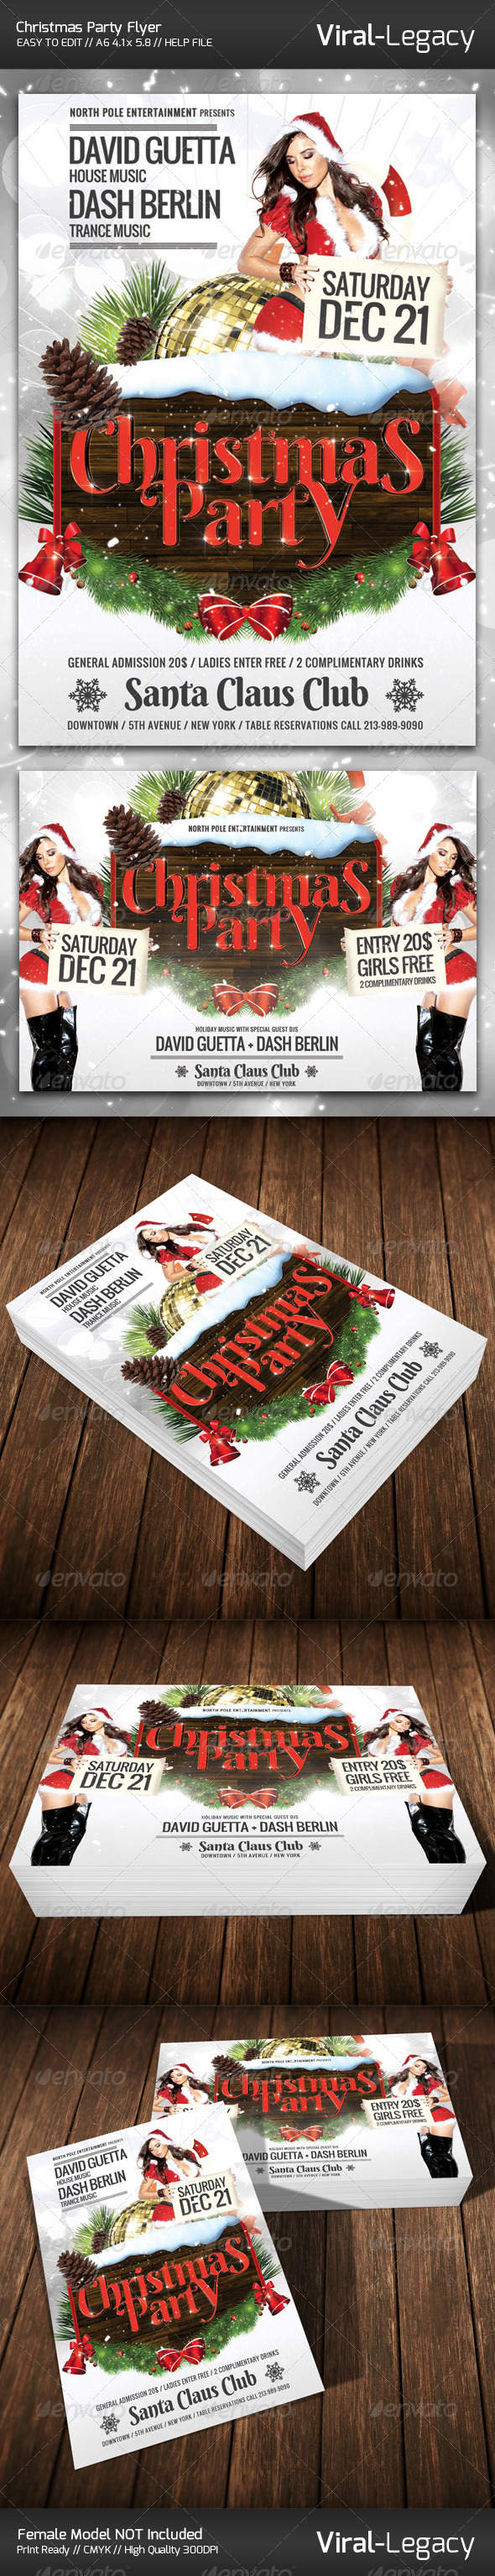 Christmas Party Flyer - Flyers Print Templates